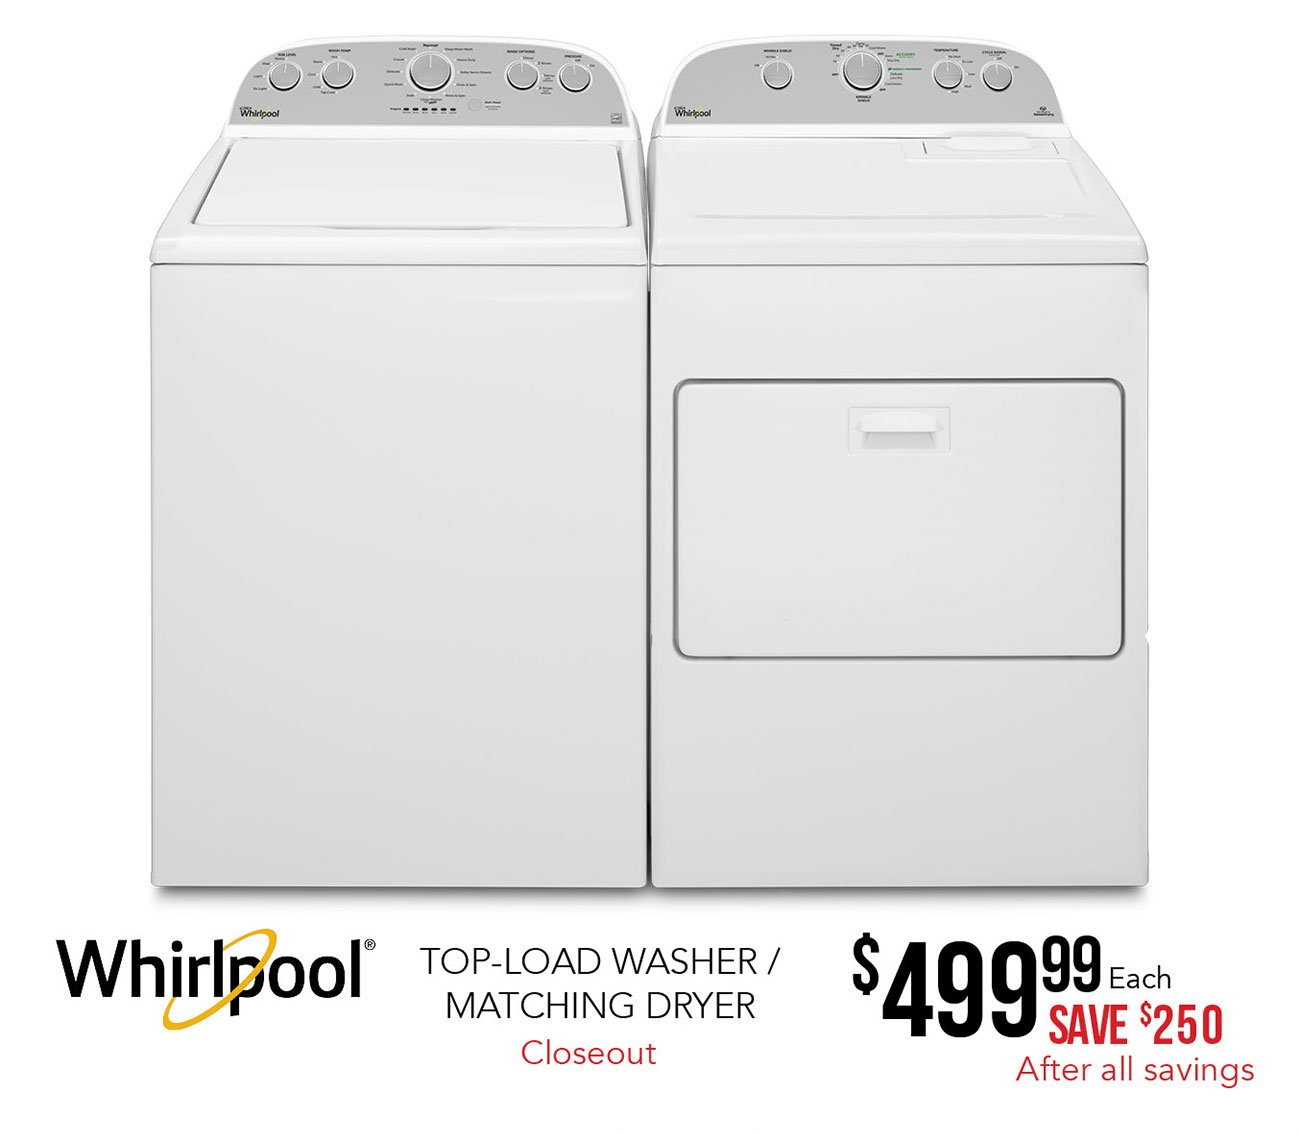 Whirlpool-top-load-washer-and-dryer